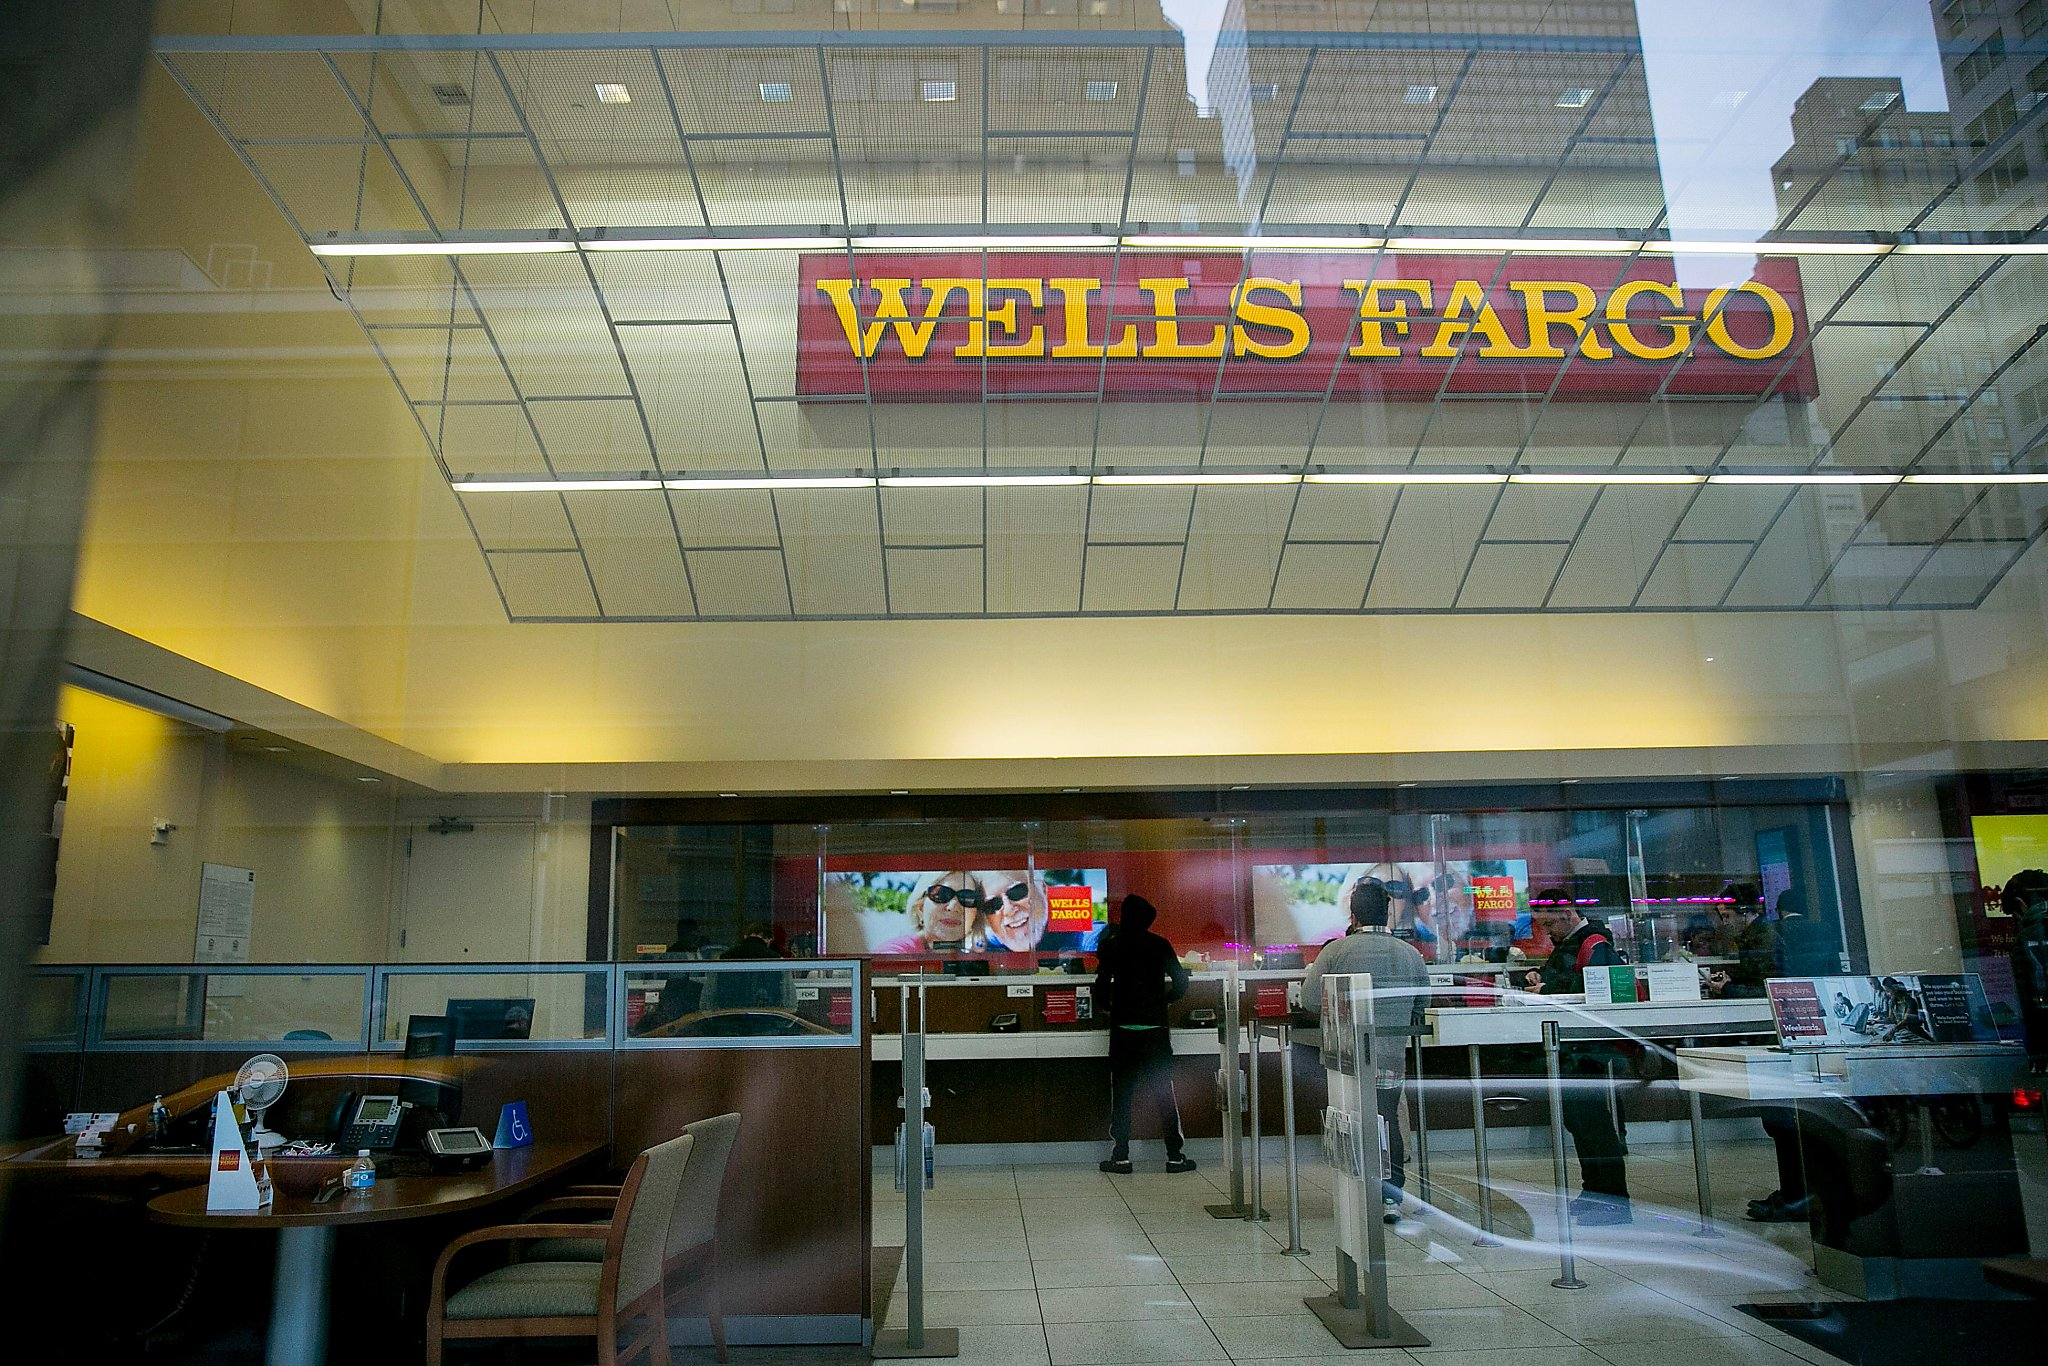 Complete Wells Fargo Store Locator. List of all Wells Fargo locations. Find hours of operation, street address, driving map, and contact information.